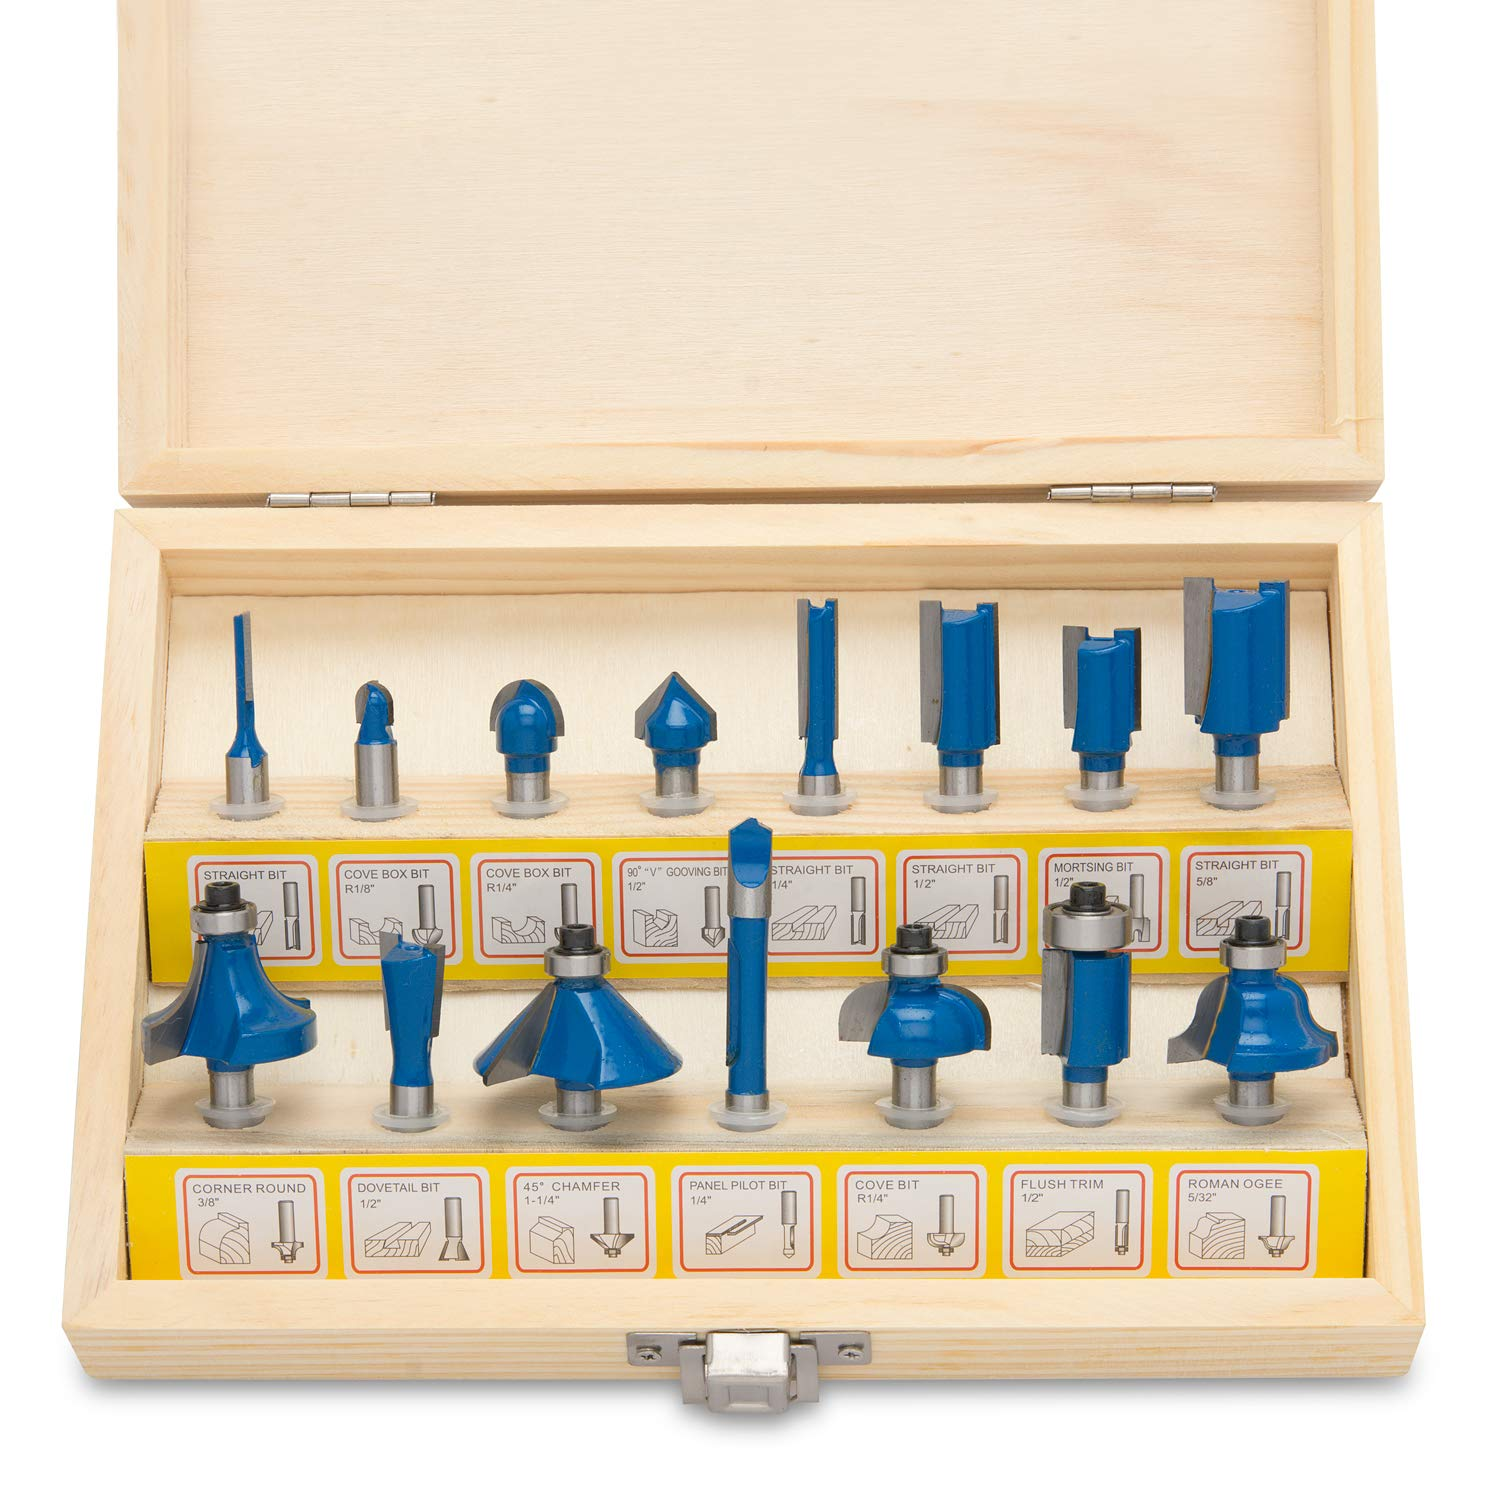 Hiltex 10100 Tungsten Carbide Router Bits | 15-Piece Set